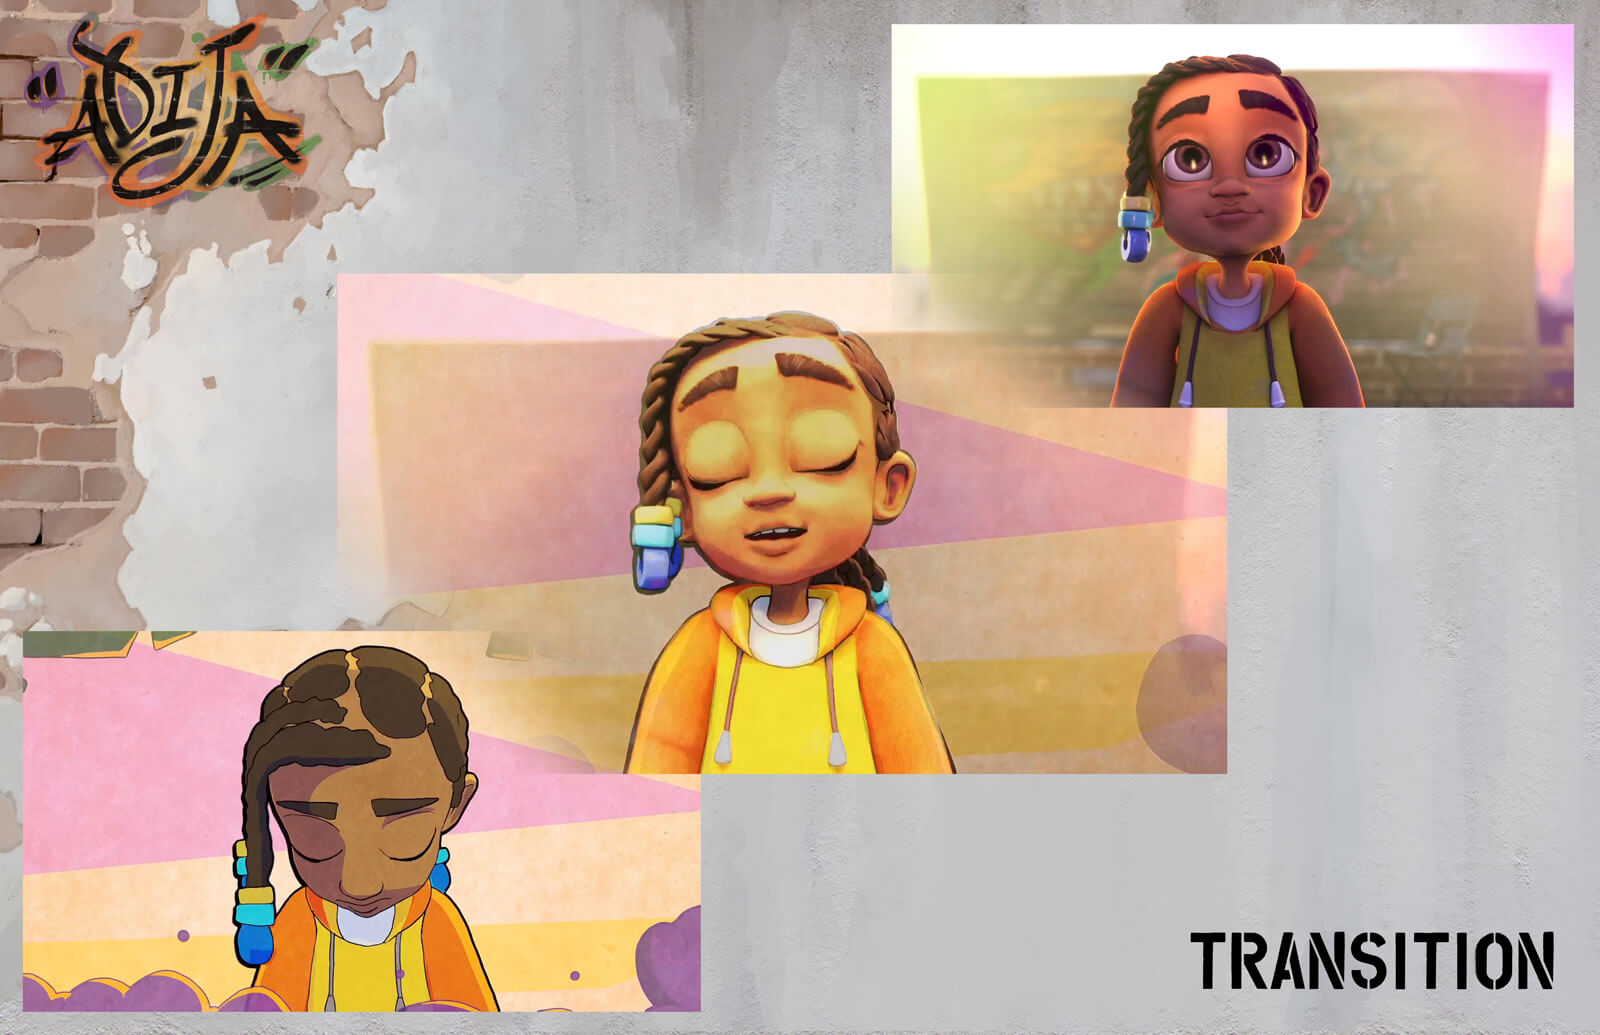 Presentation slide depicting the transition between 2D and 3D animation in the film Adija